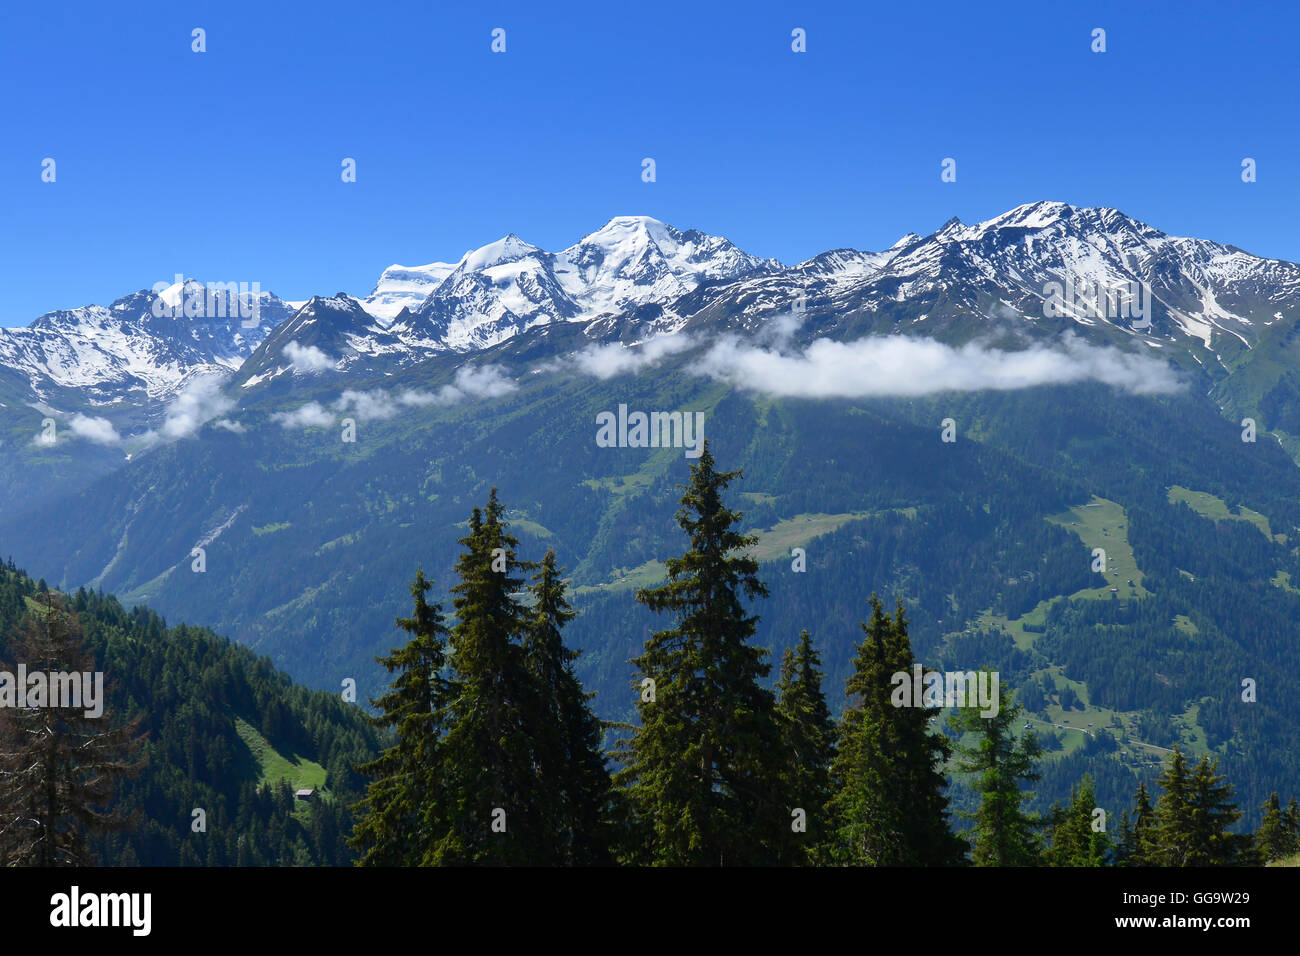 View of the Grand Combin Massif from Cabane Mont Fort on the Haute Route, Val de Bagnes, Switzerland - Stock Image